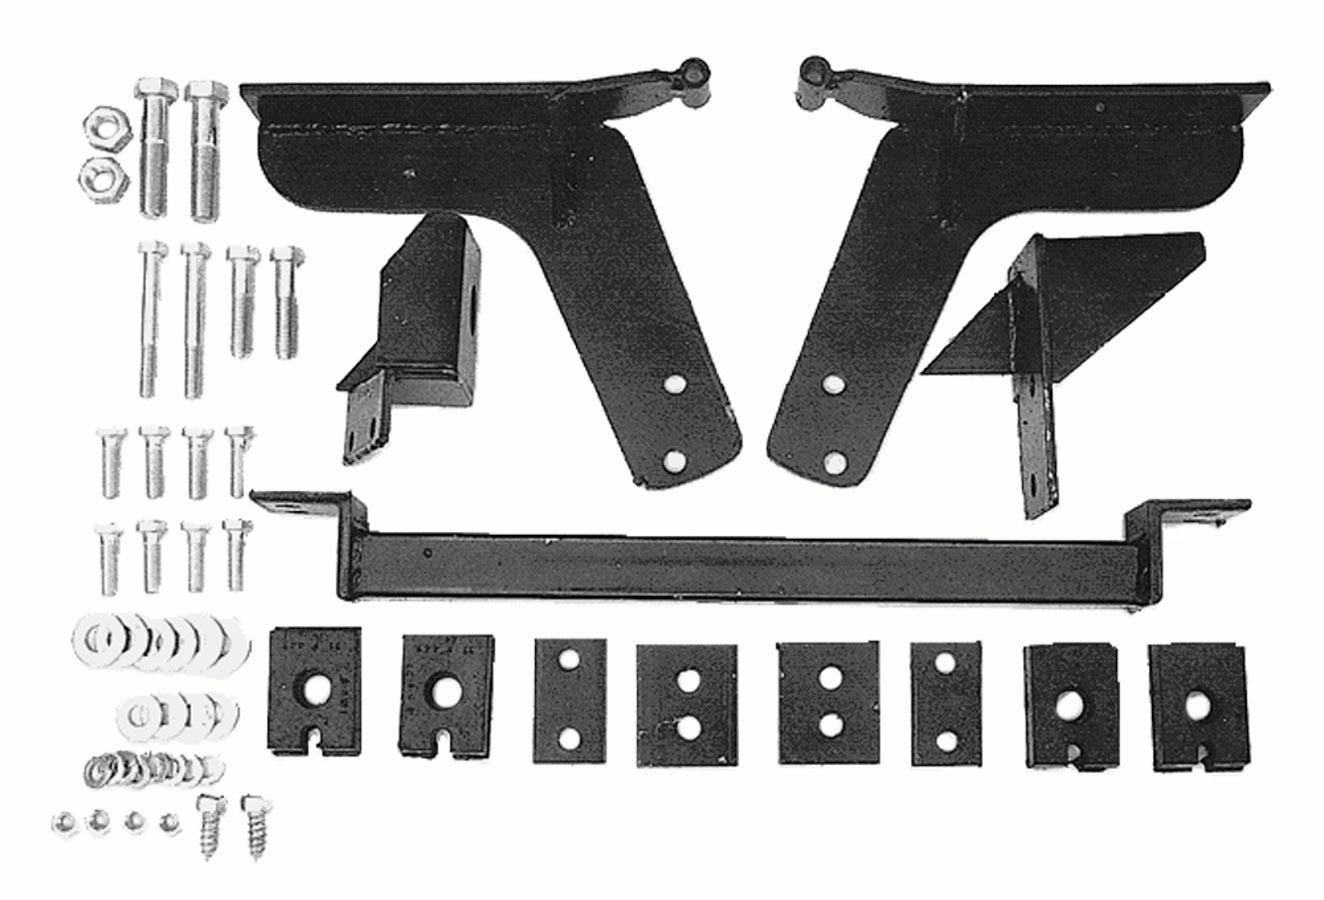 Trans Dapt 4686 Motor Mount, Crossmember Included, Steel, Chevy Vega / Pontiac Astra to Chevy V8 and TH350, Kit